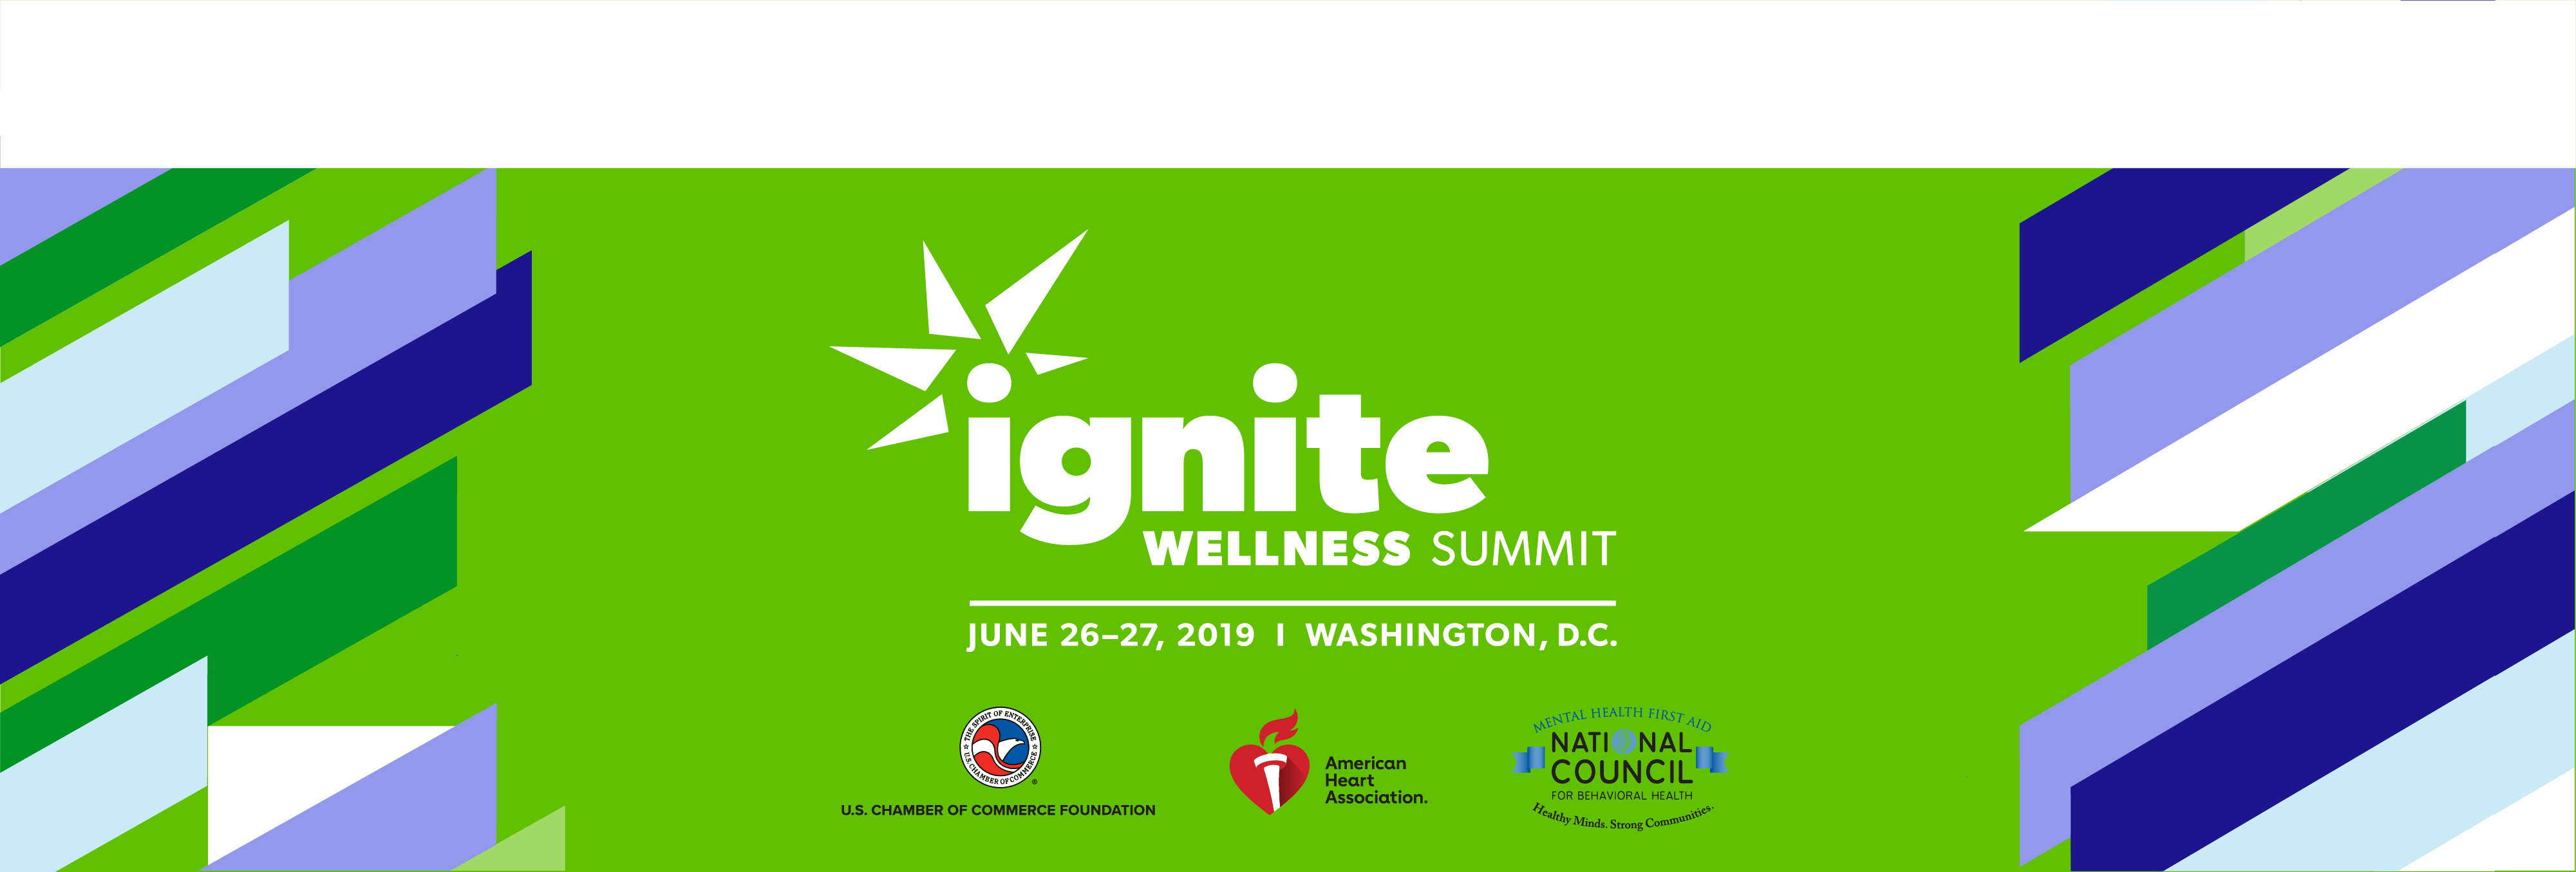 Ignite Wellness Summit